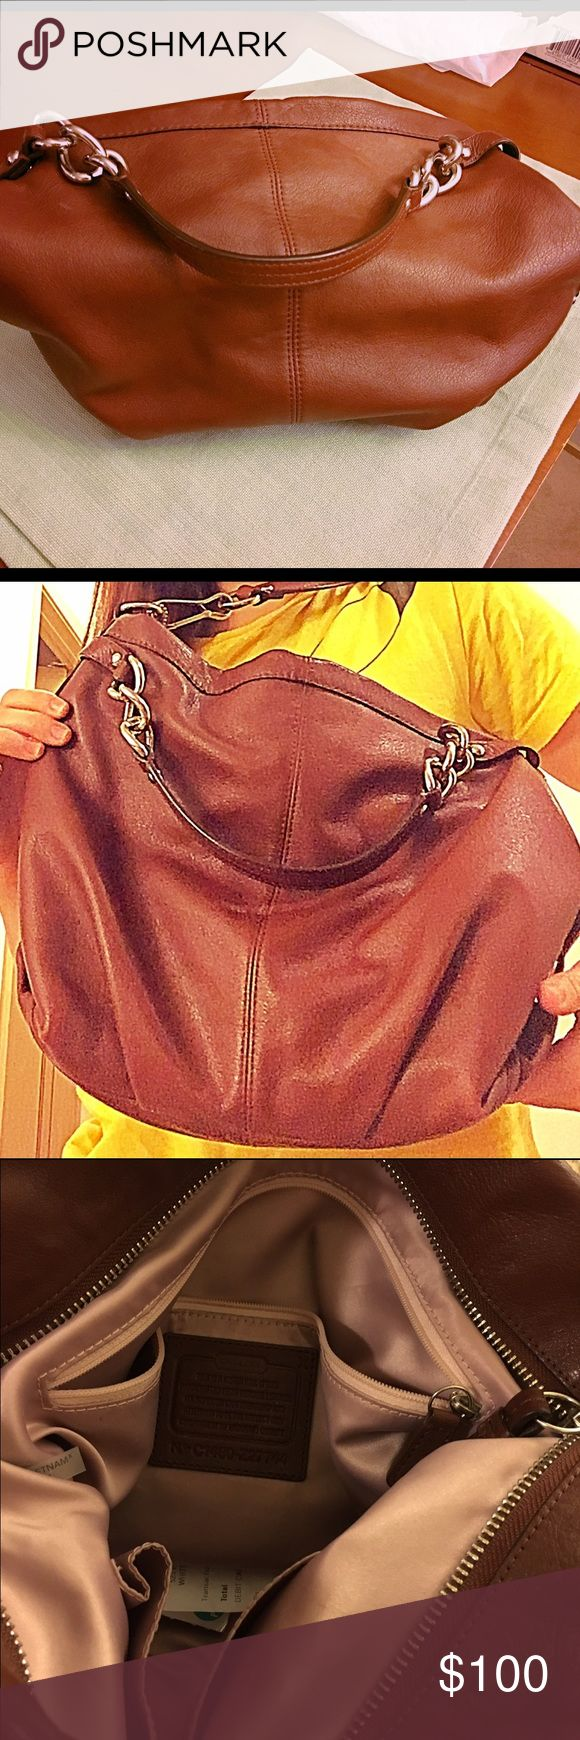 Leather coach hobo purse Beautiful purse! Leather hobo bag. Multiple pockets inside w silky light pink interior. Used but still looks brand new. Even still has the leather smell. Coach Bags Hobos